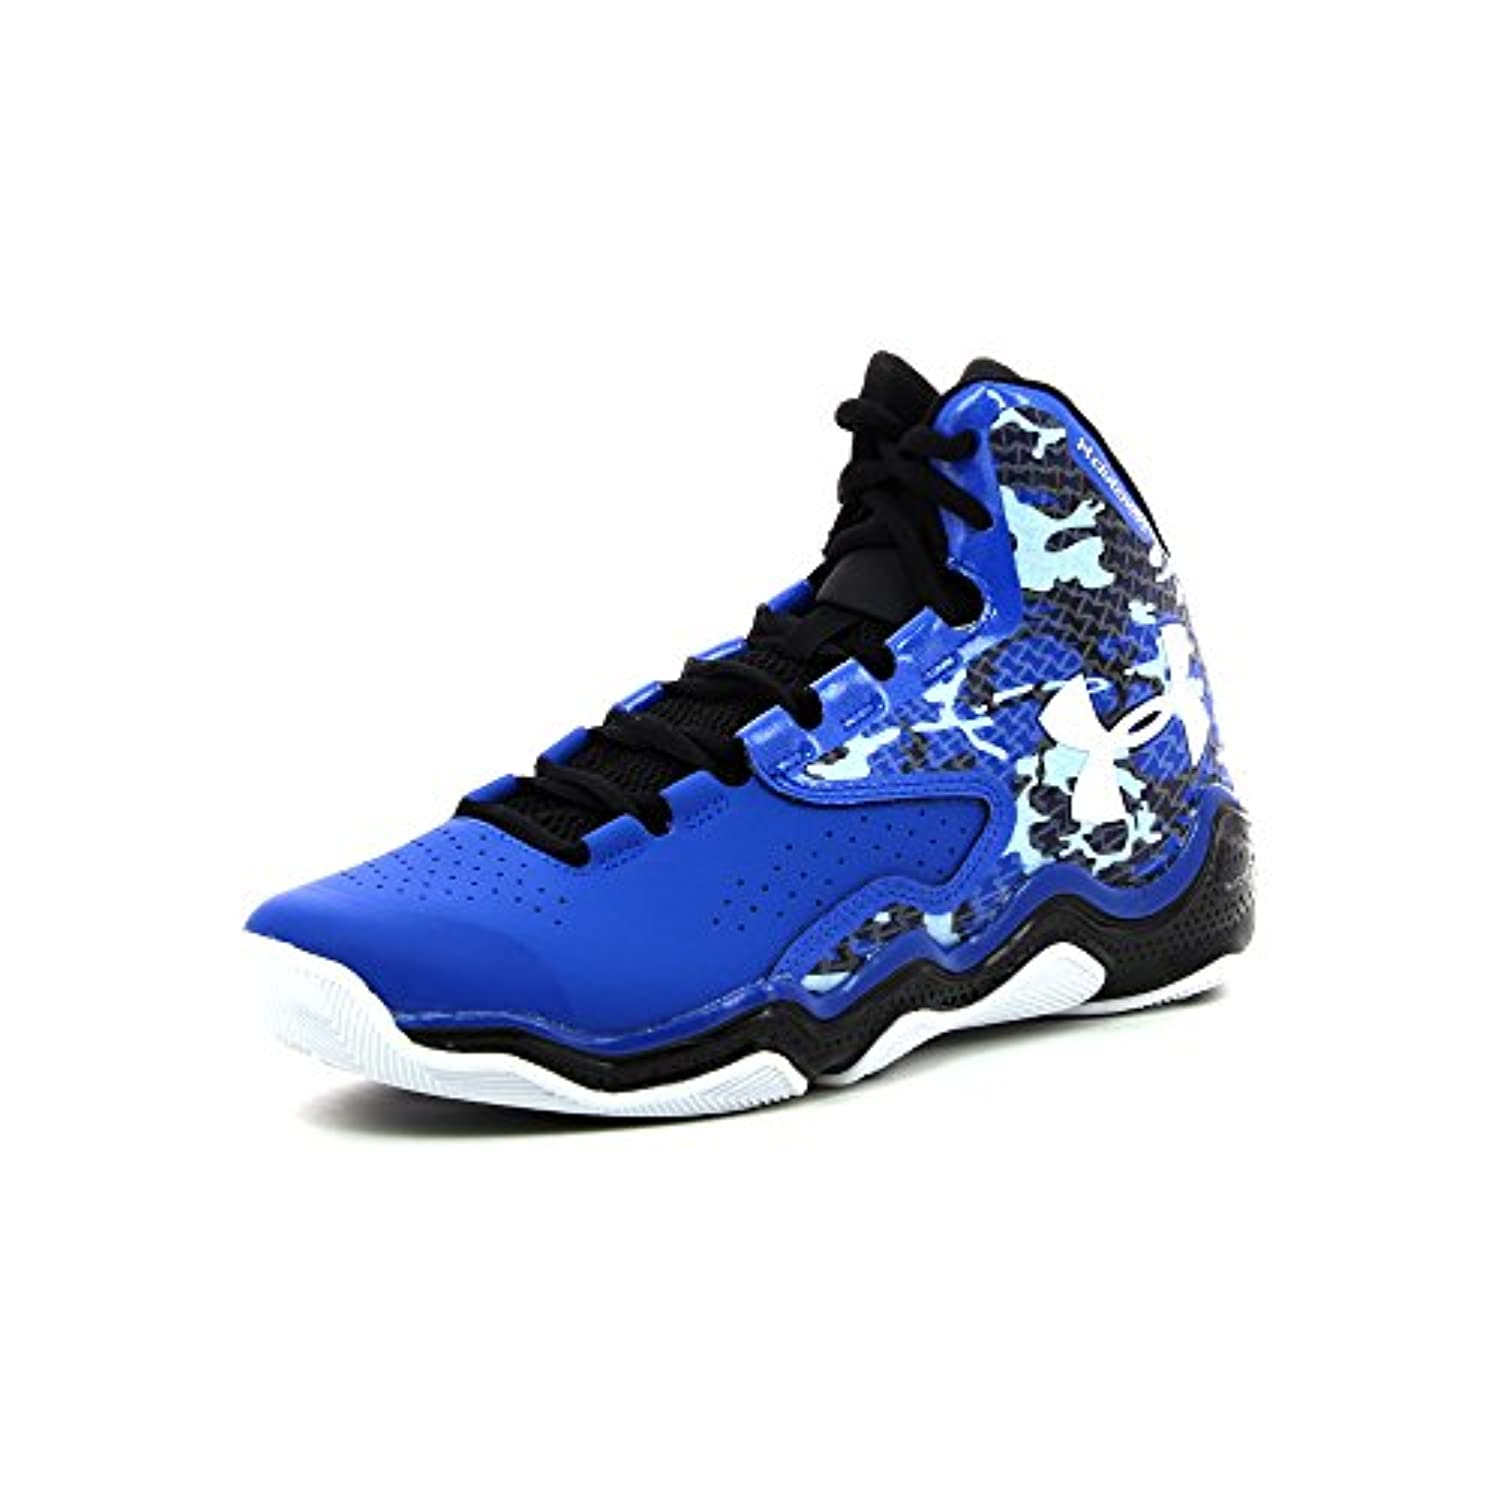 under armour men's clutchfit lightning basketball shoes